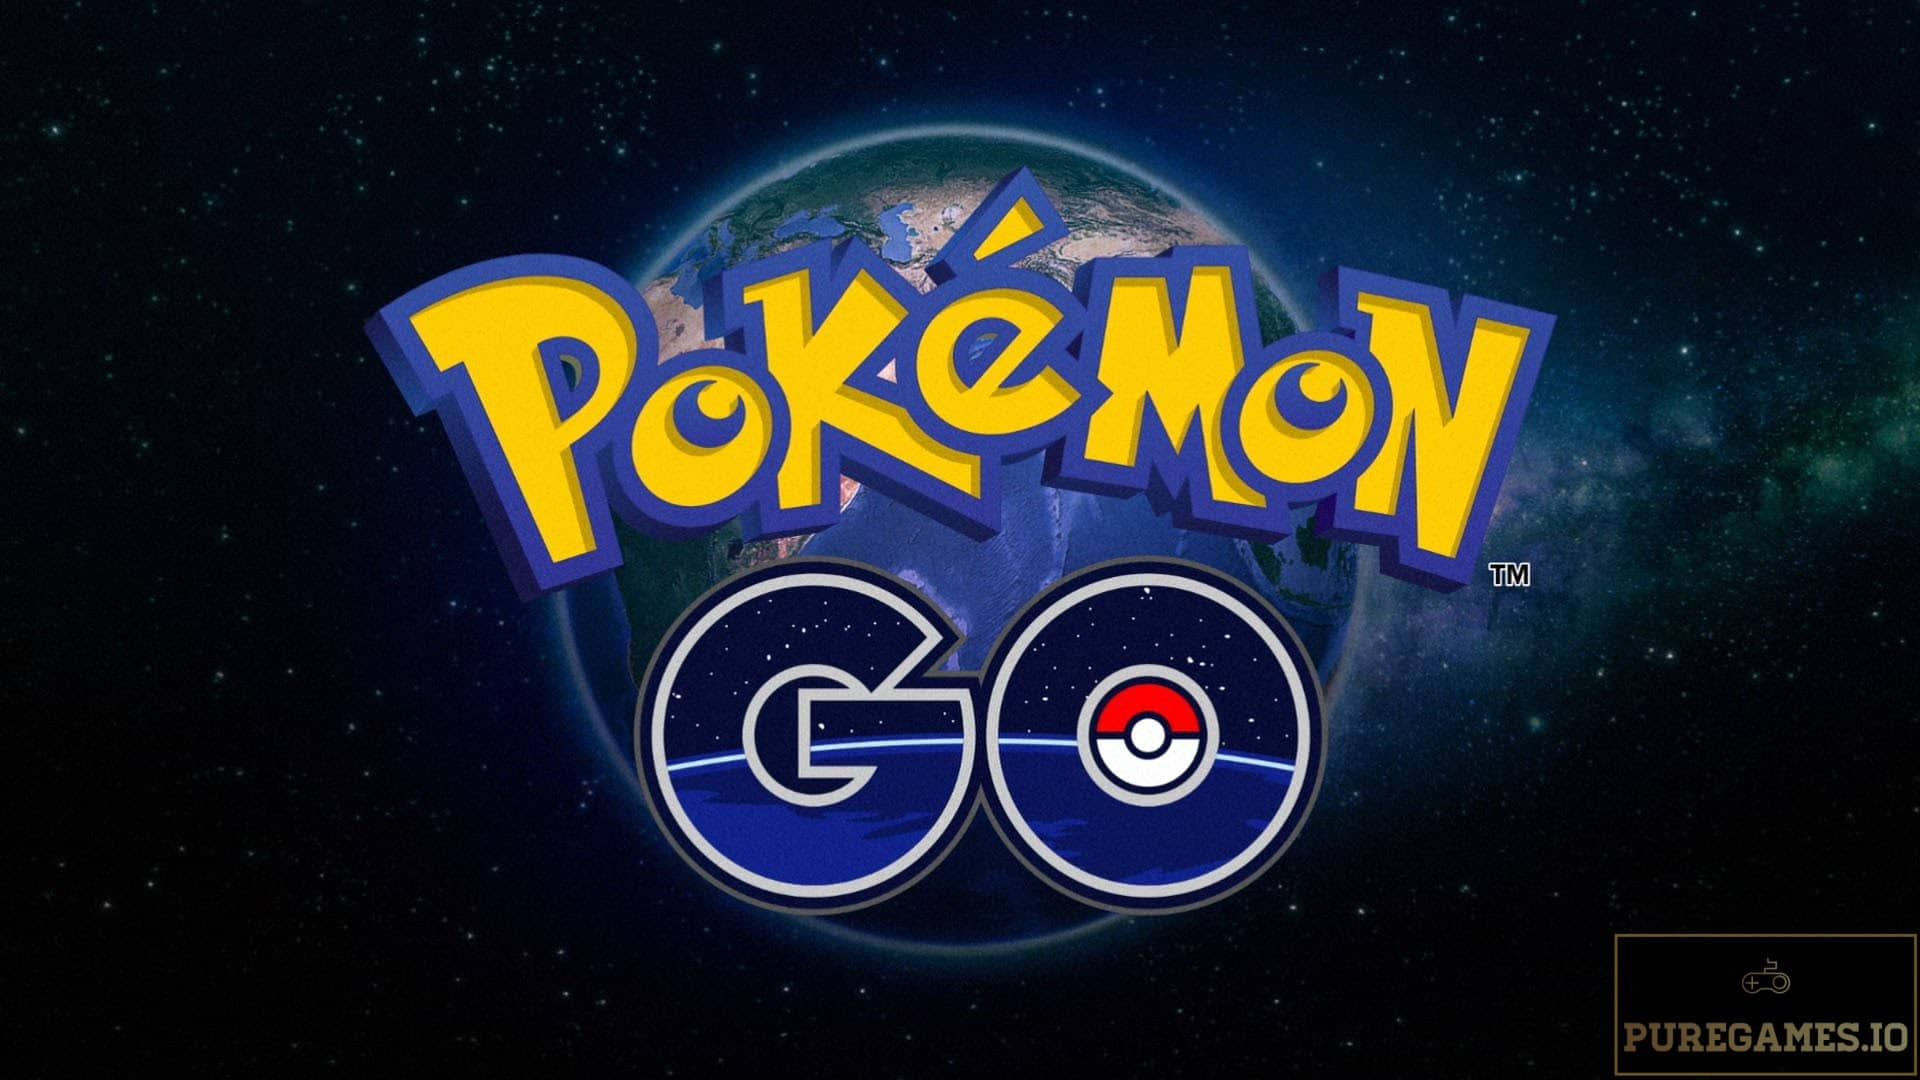 Download Pokémon Go APK – For Android/iOS 11